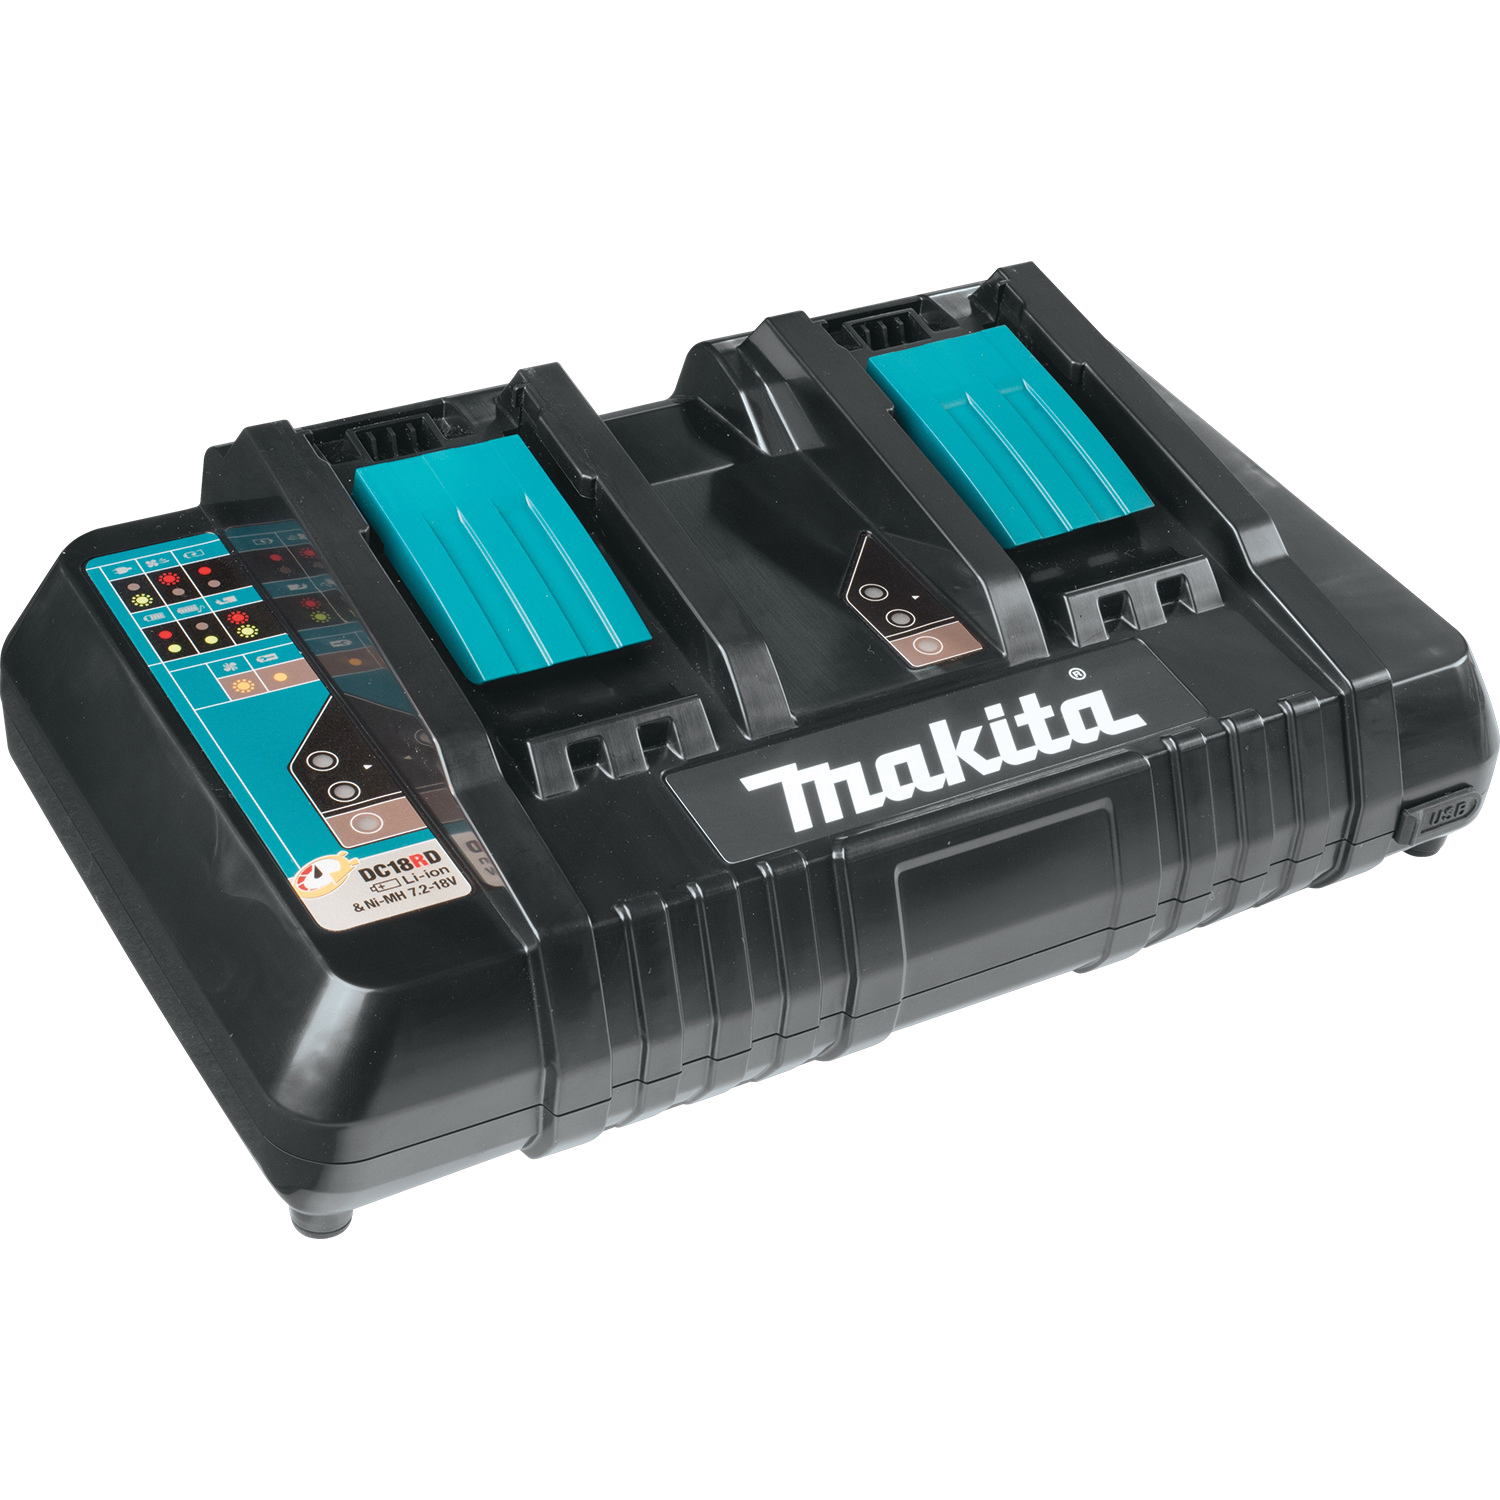 Picture of Makita DC18RD Dual Port Battery Charger, 14.4, 18 V Output, 2 to 6 Ah, Battery Included: No